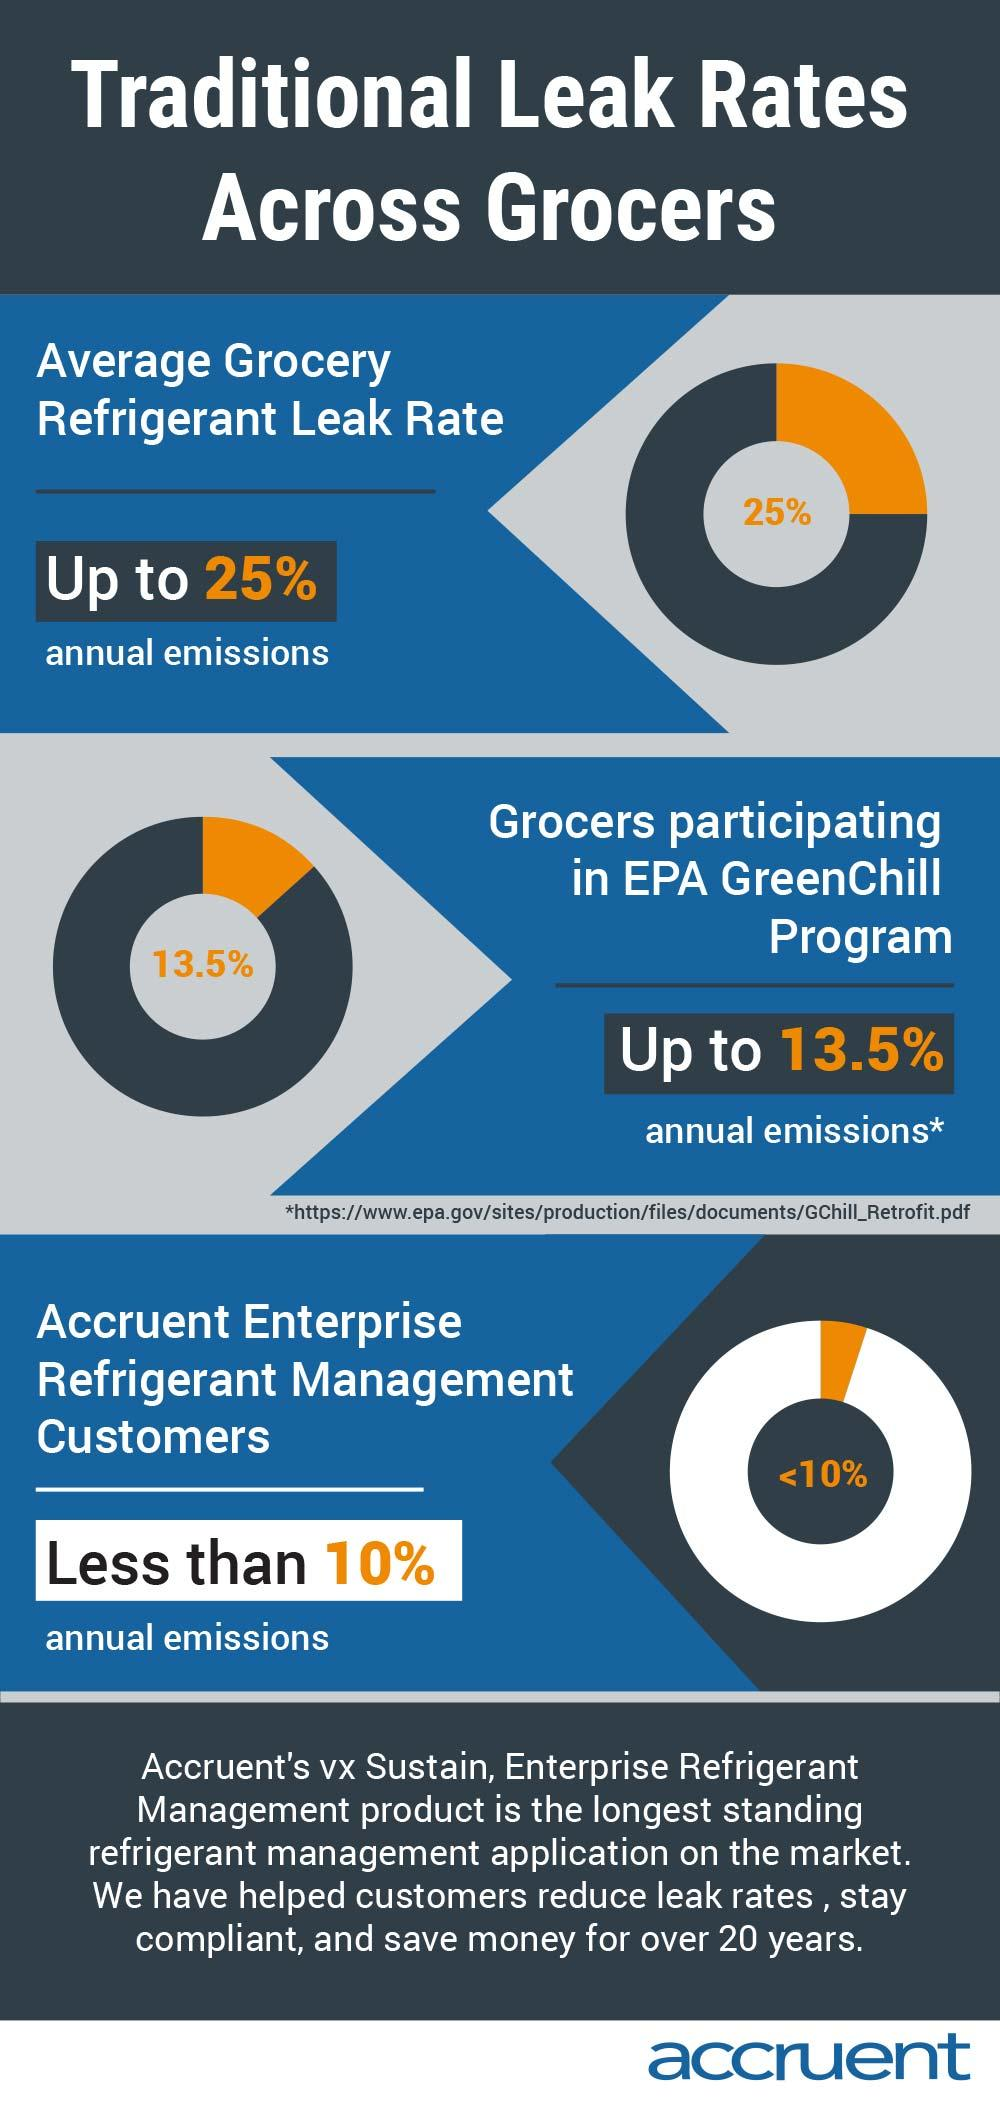 Accruent - Resources - Infographics - Traditional Leak Rates Across Grocers - Hero